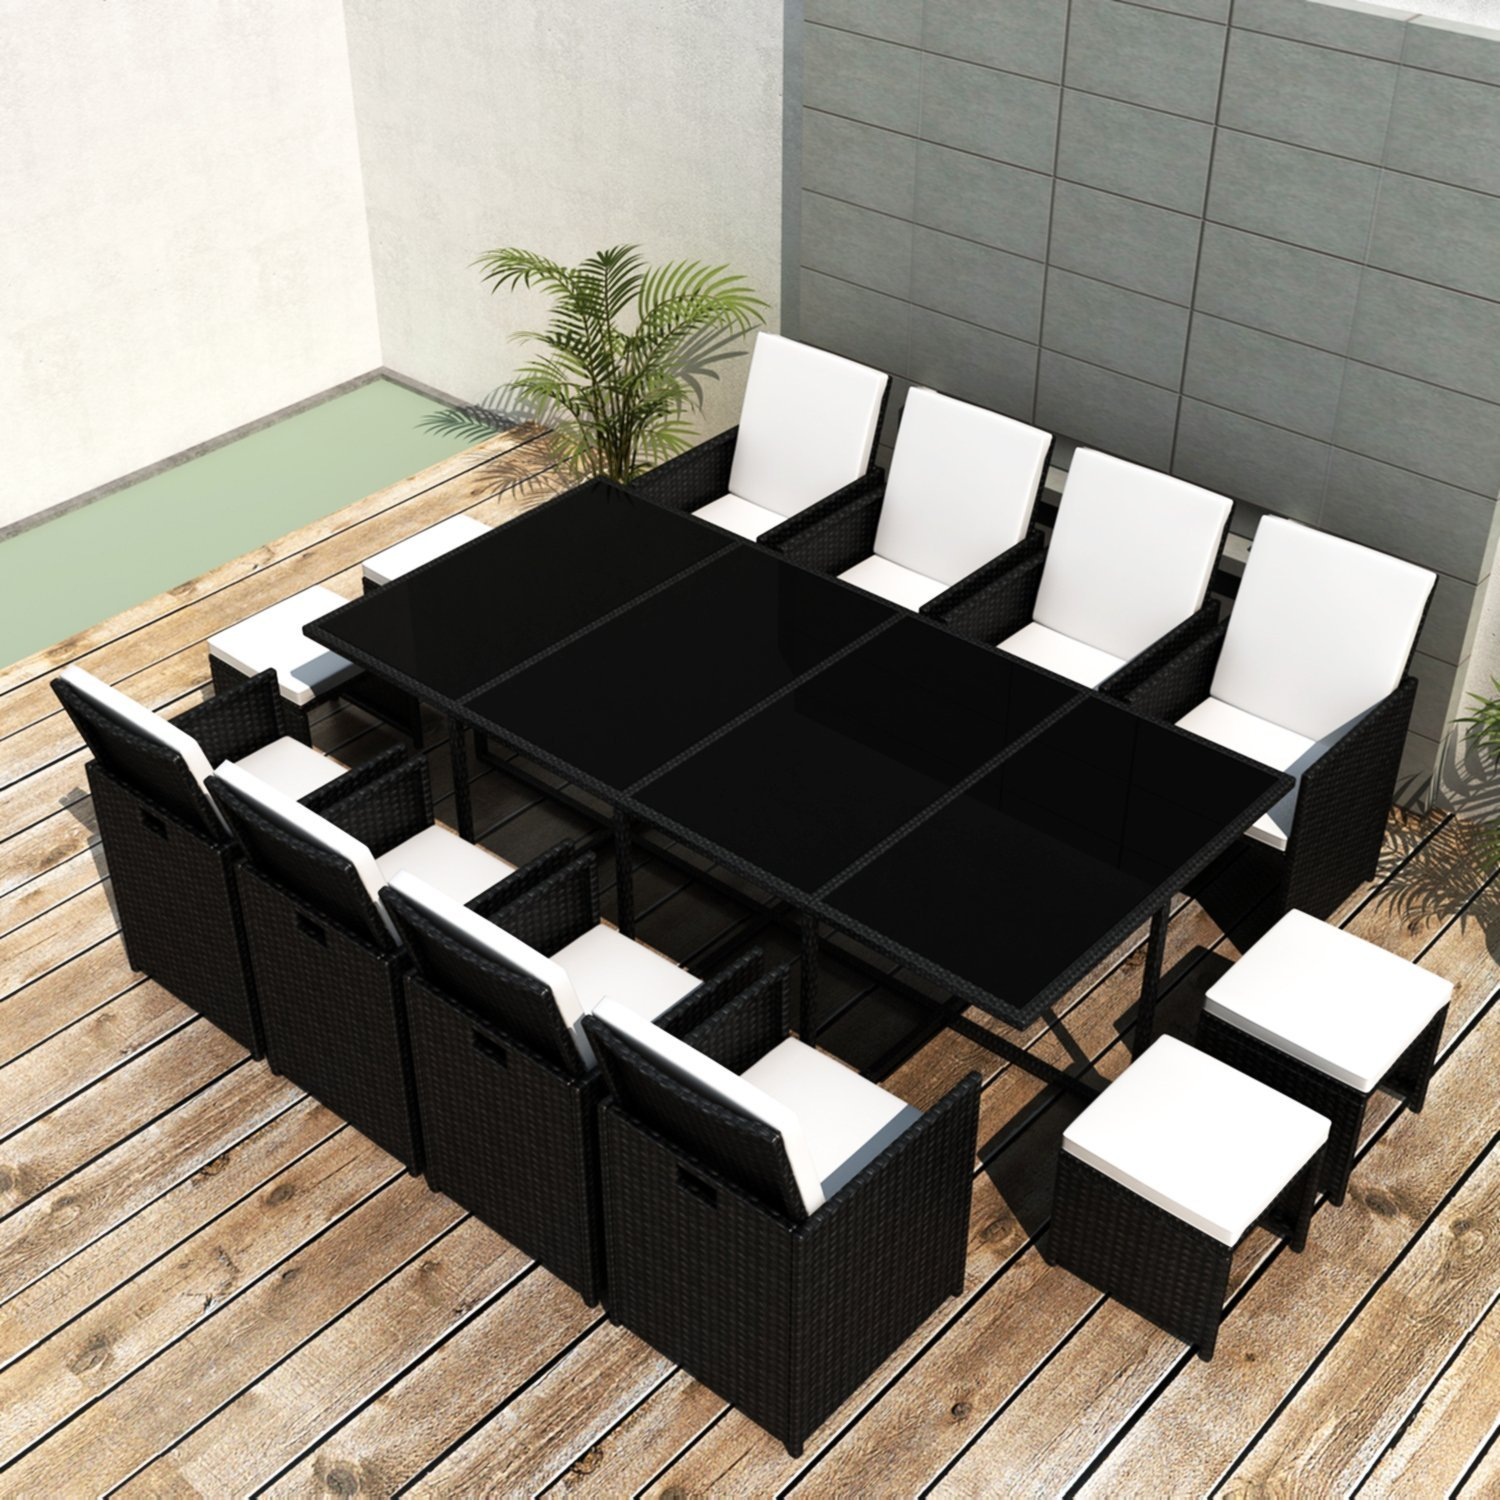 ssitg poly rattan gartenm bel essgruppe gartengarnitur set sitzgruppe sessel lounge g nstig kaufen. Black Bedroom Furniture Sets. Home Design Ideas